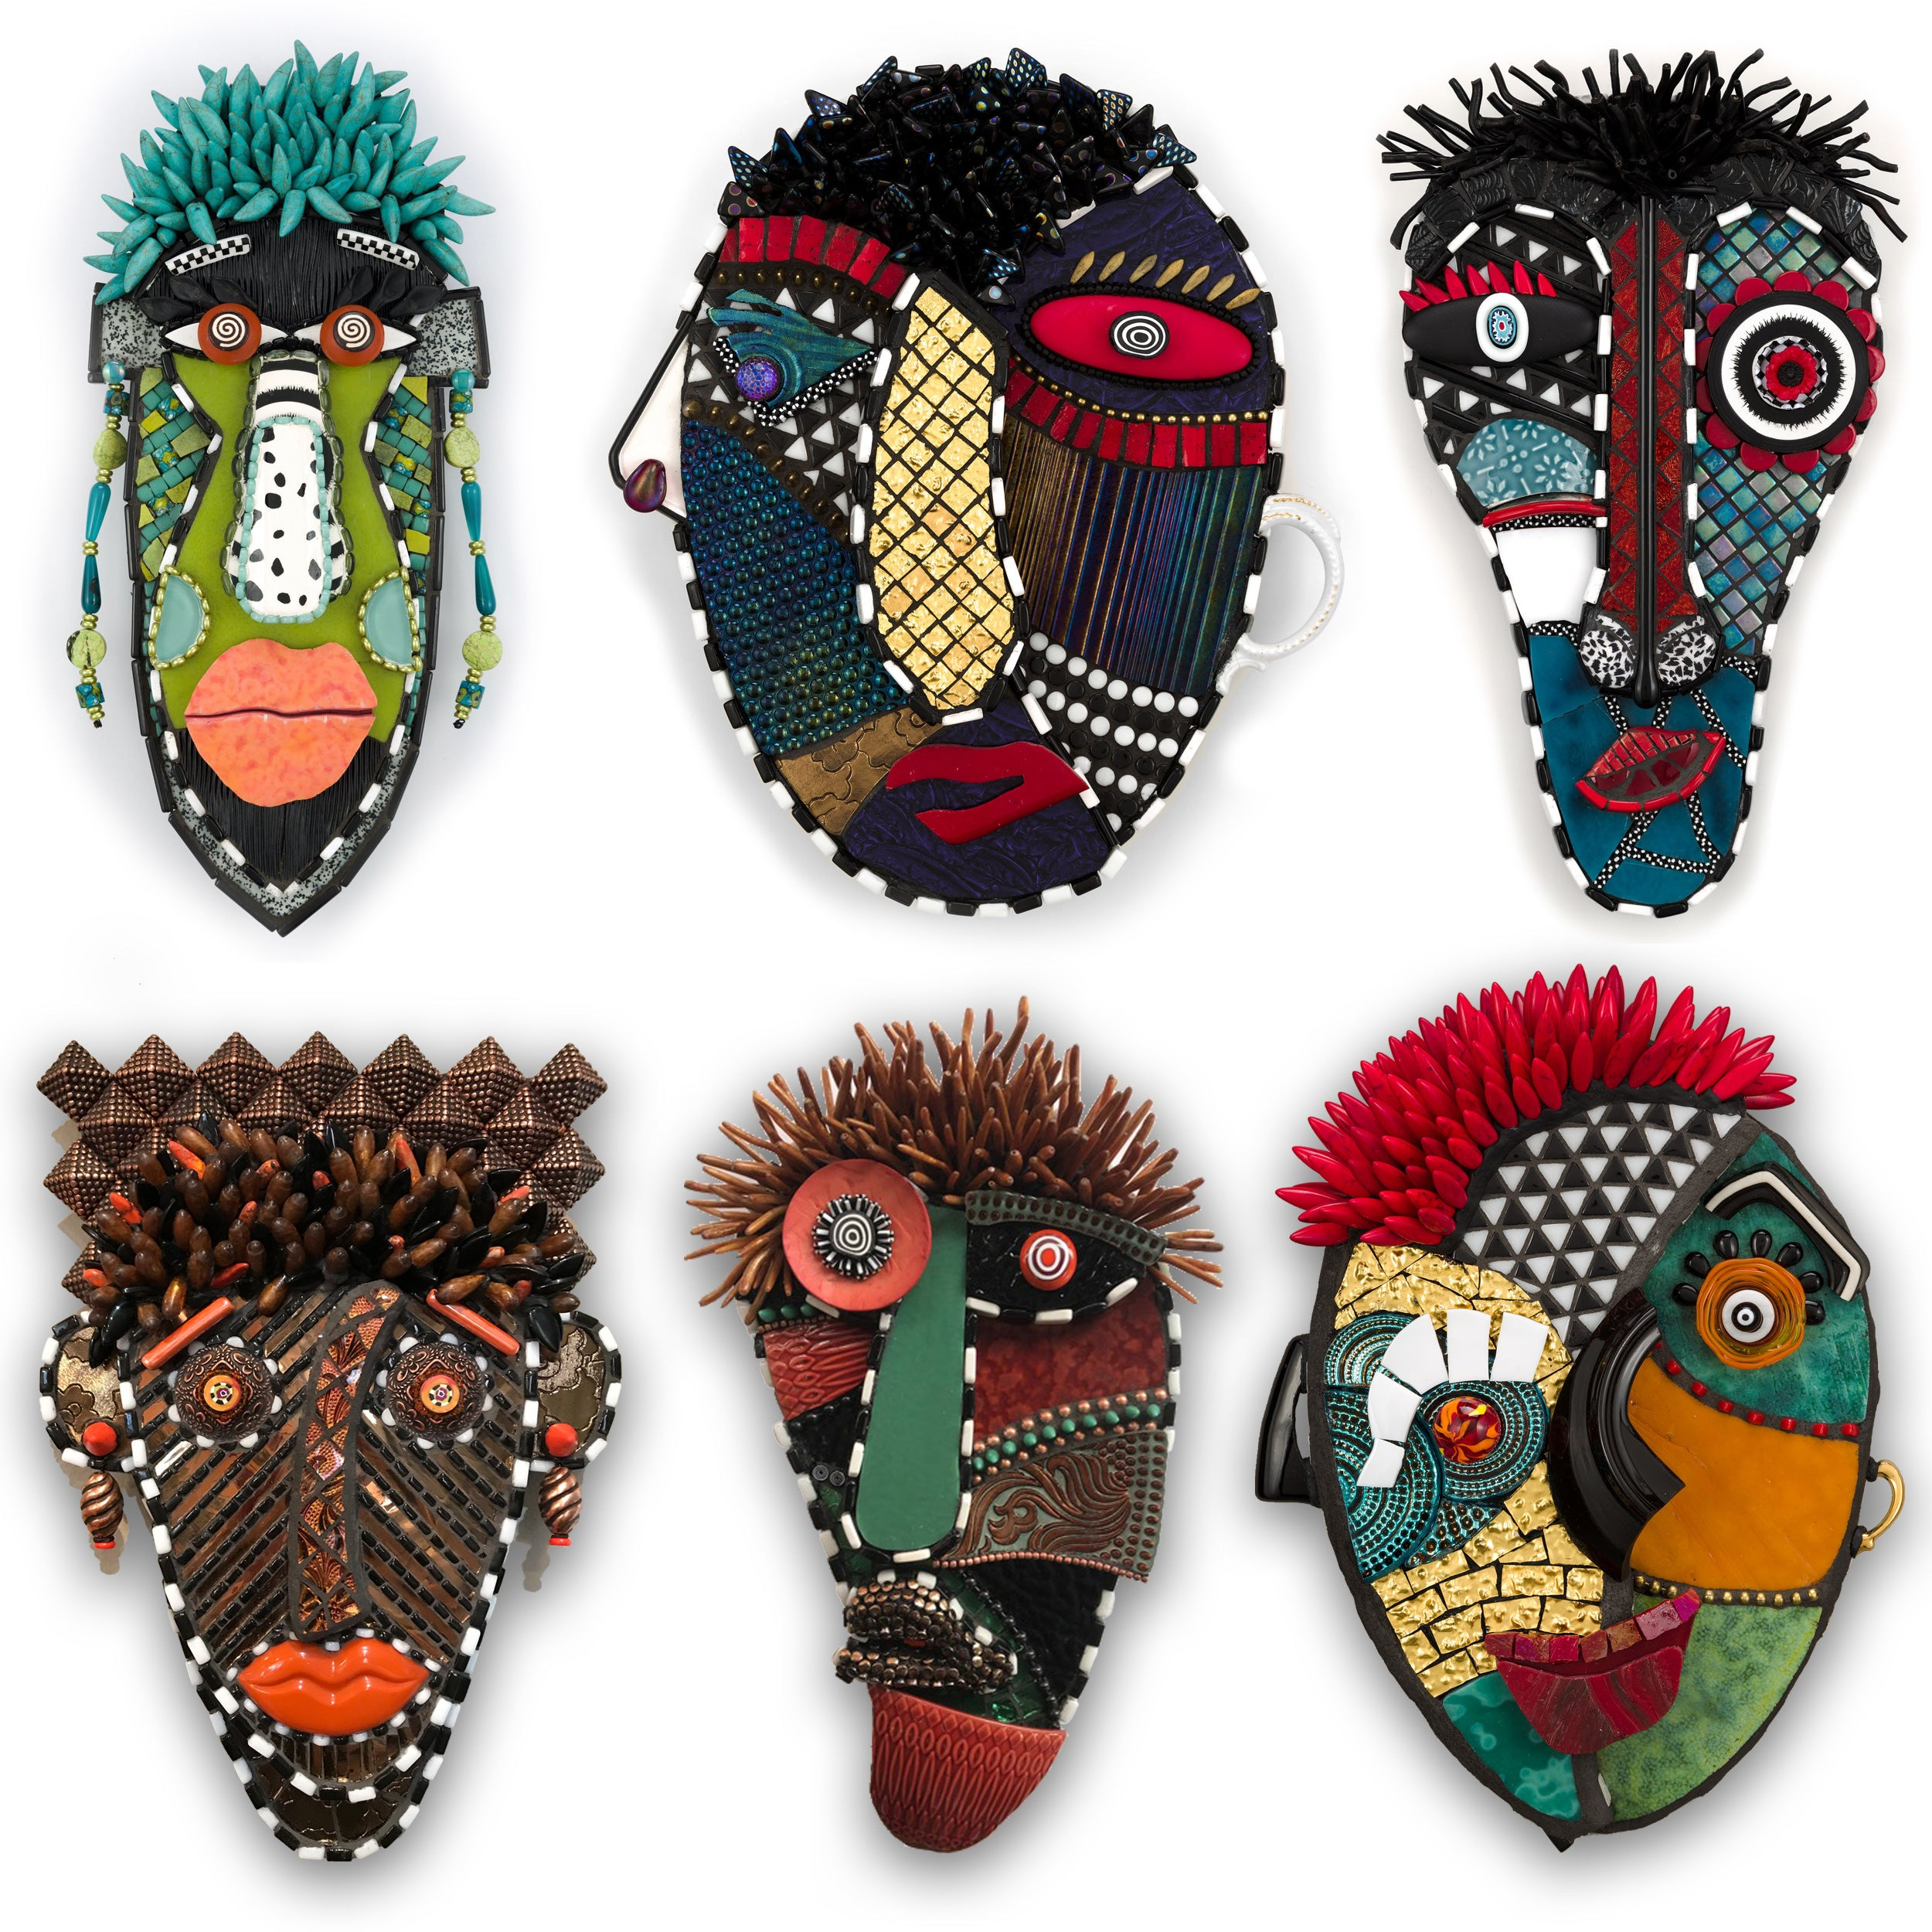 Mixed Media Mosaic Masks by Joan Schwartz